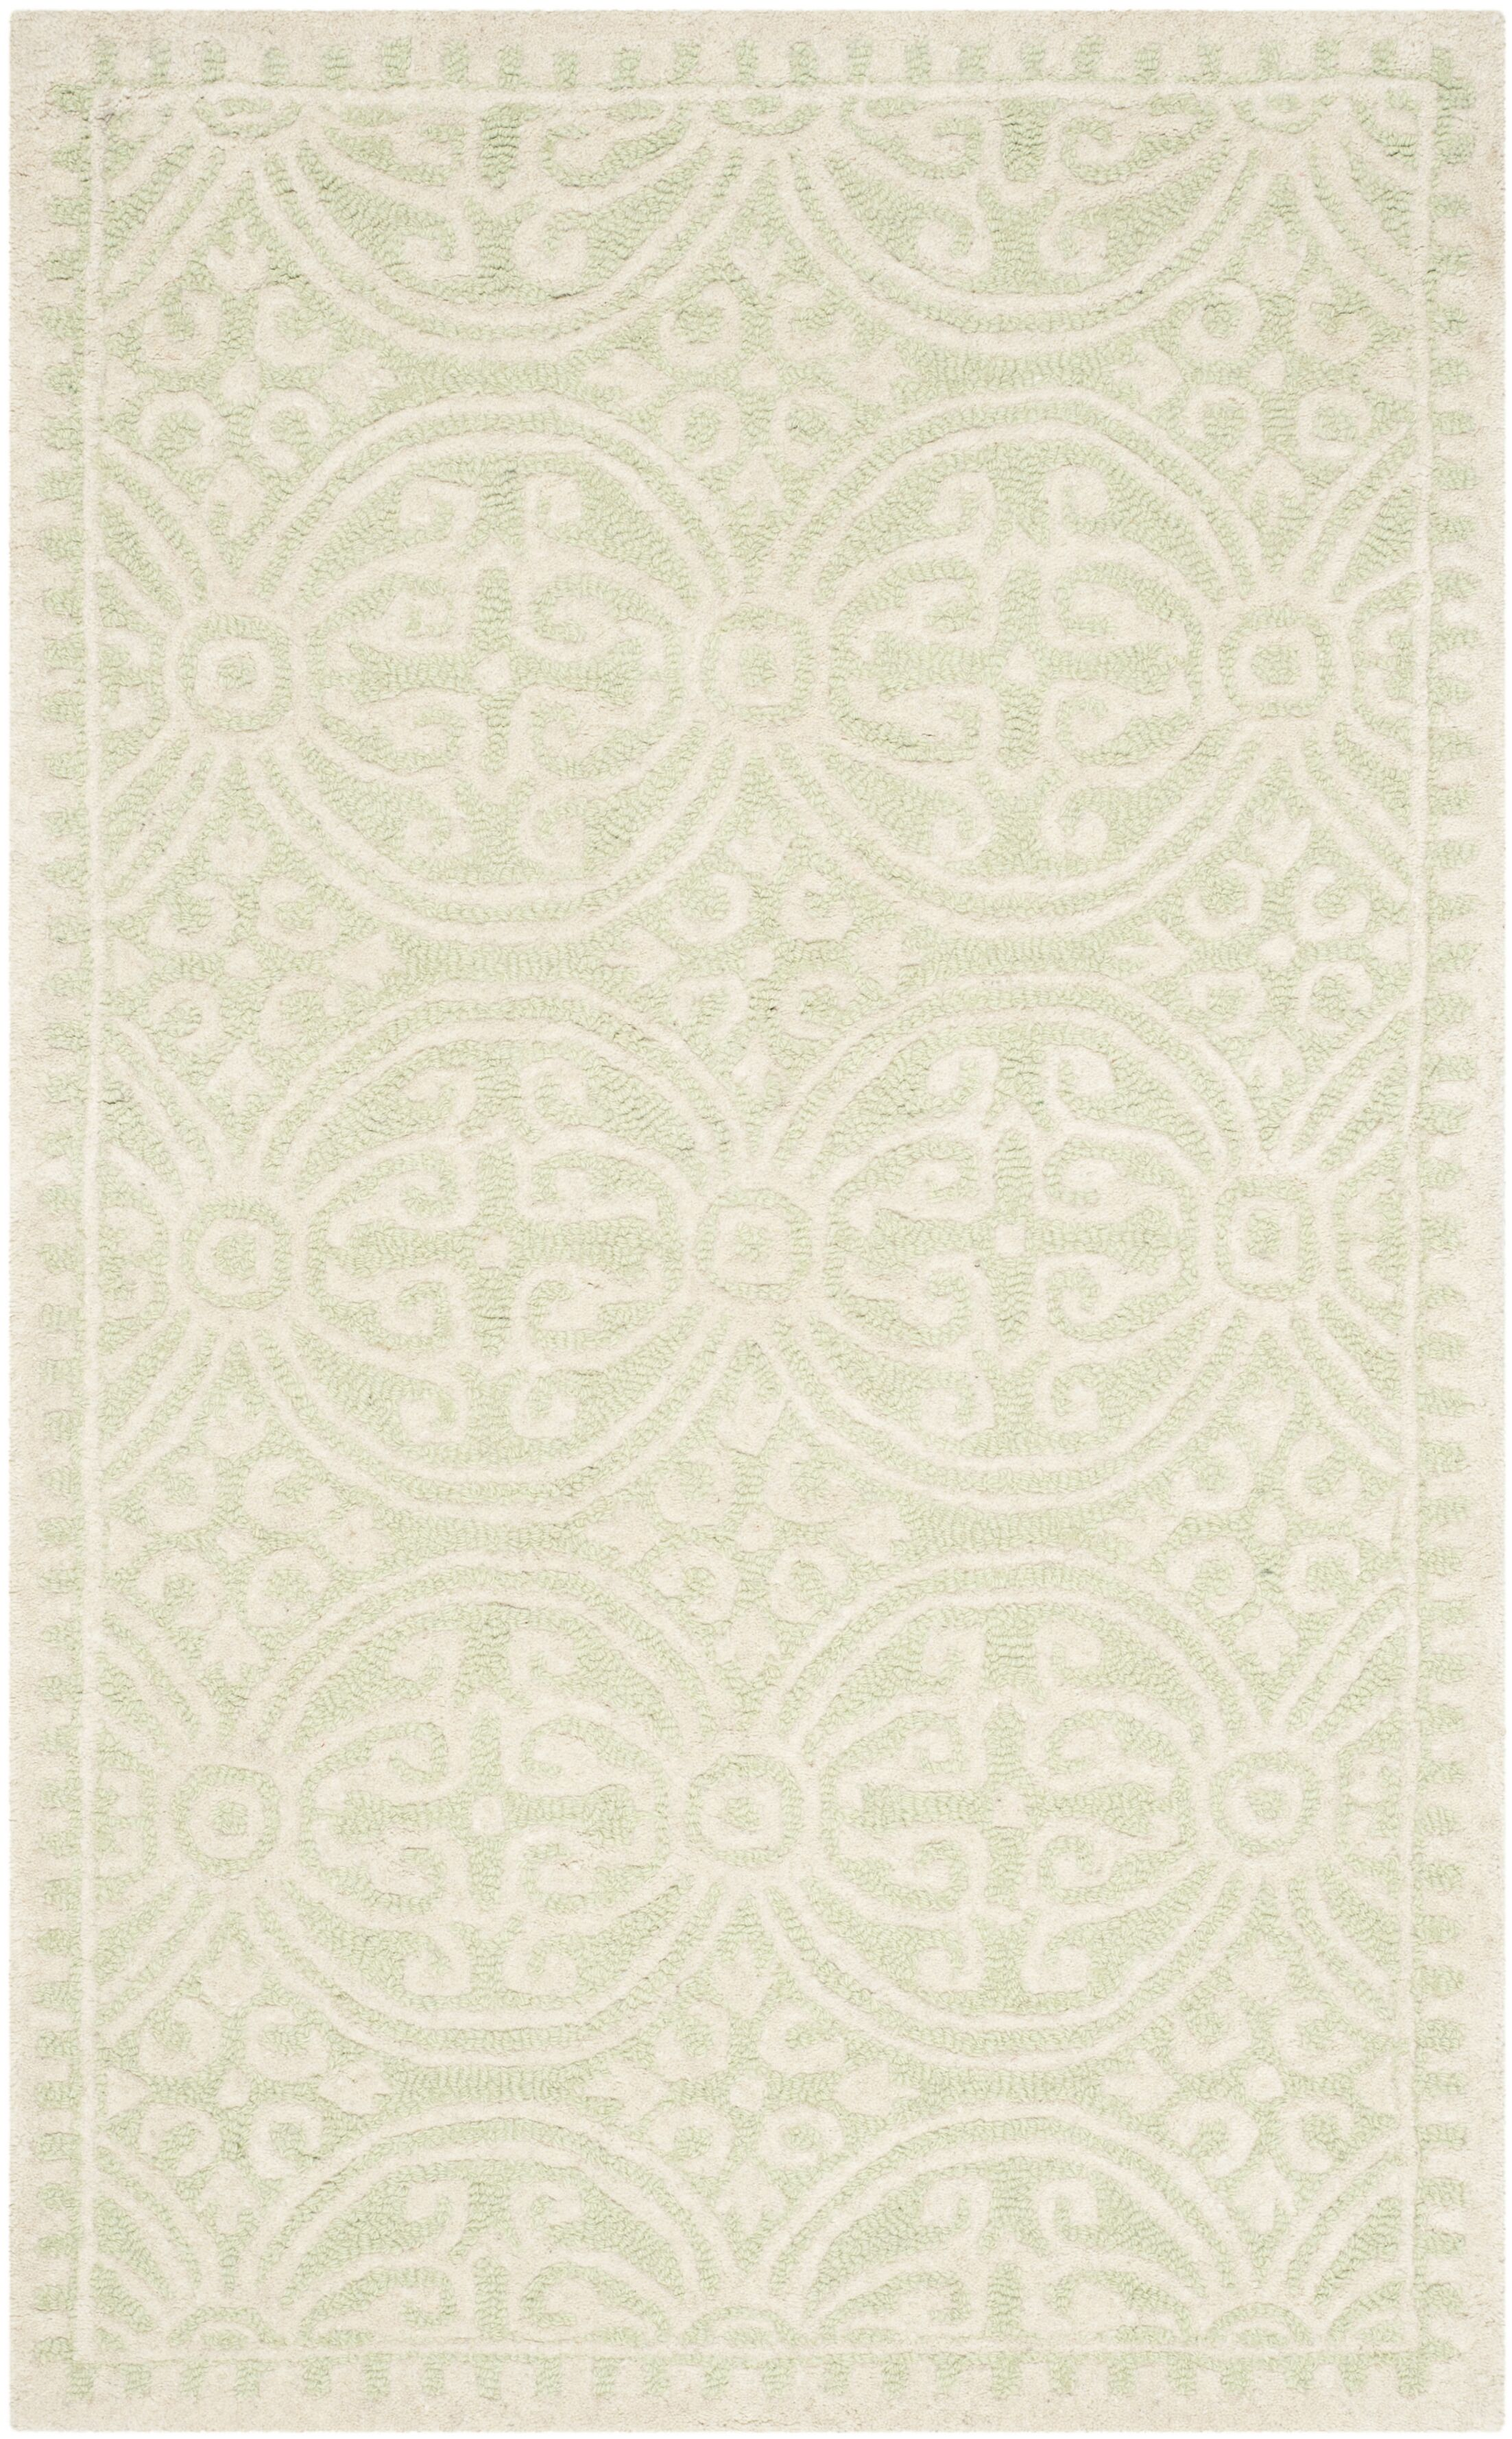 Diona Light Green/Ivory Area Rug Rug Size: Rectangle 2' x 3'